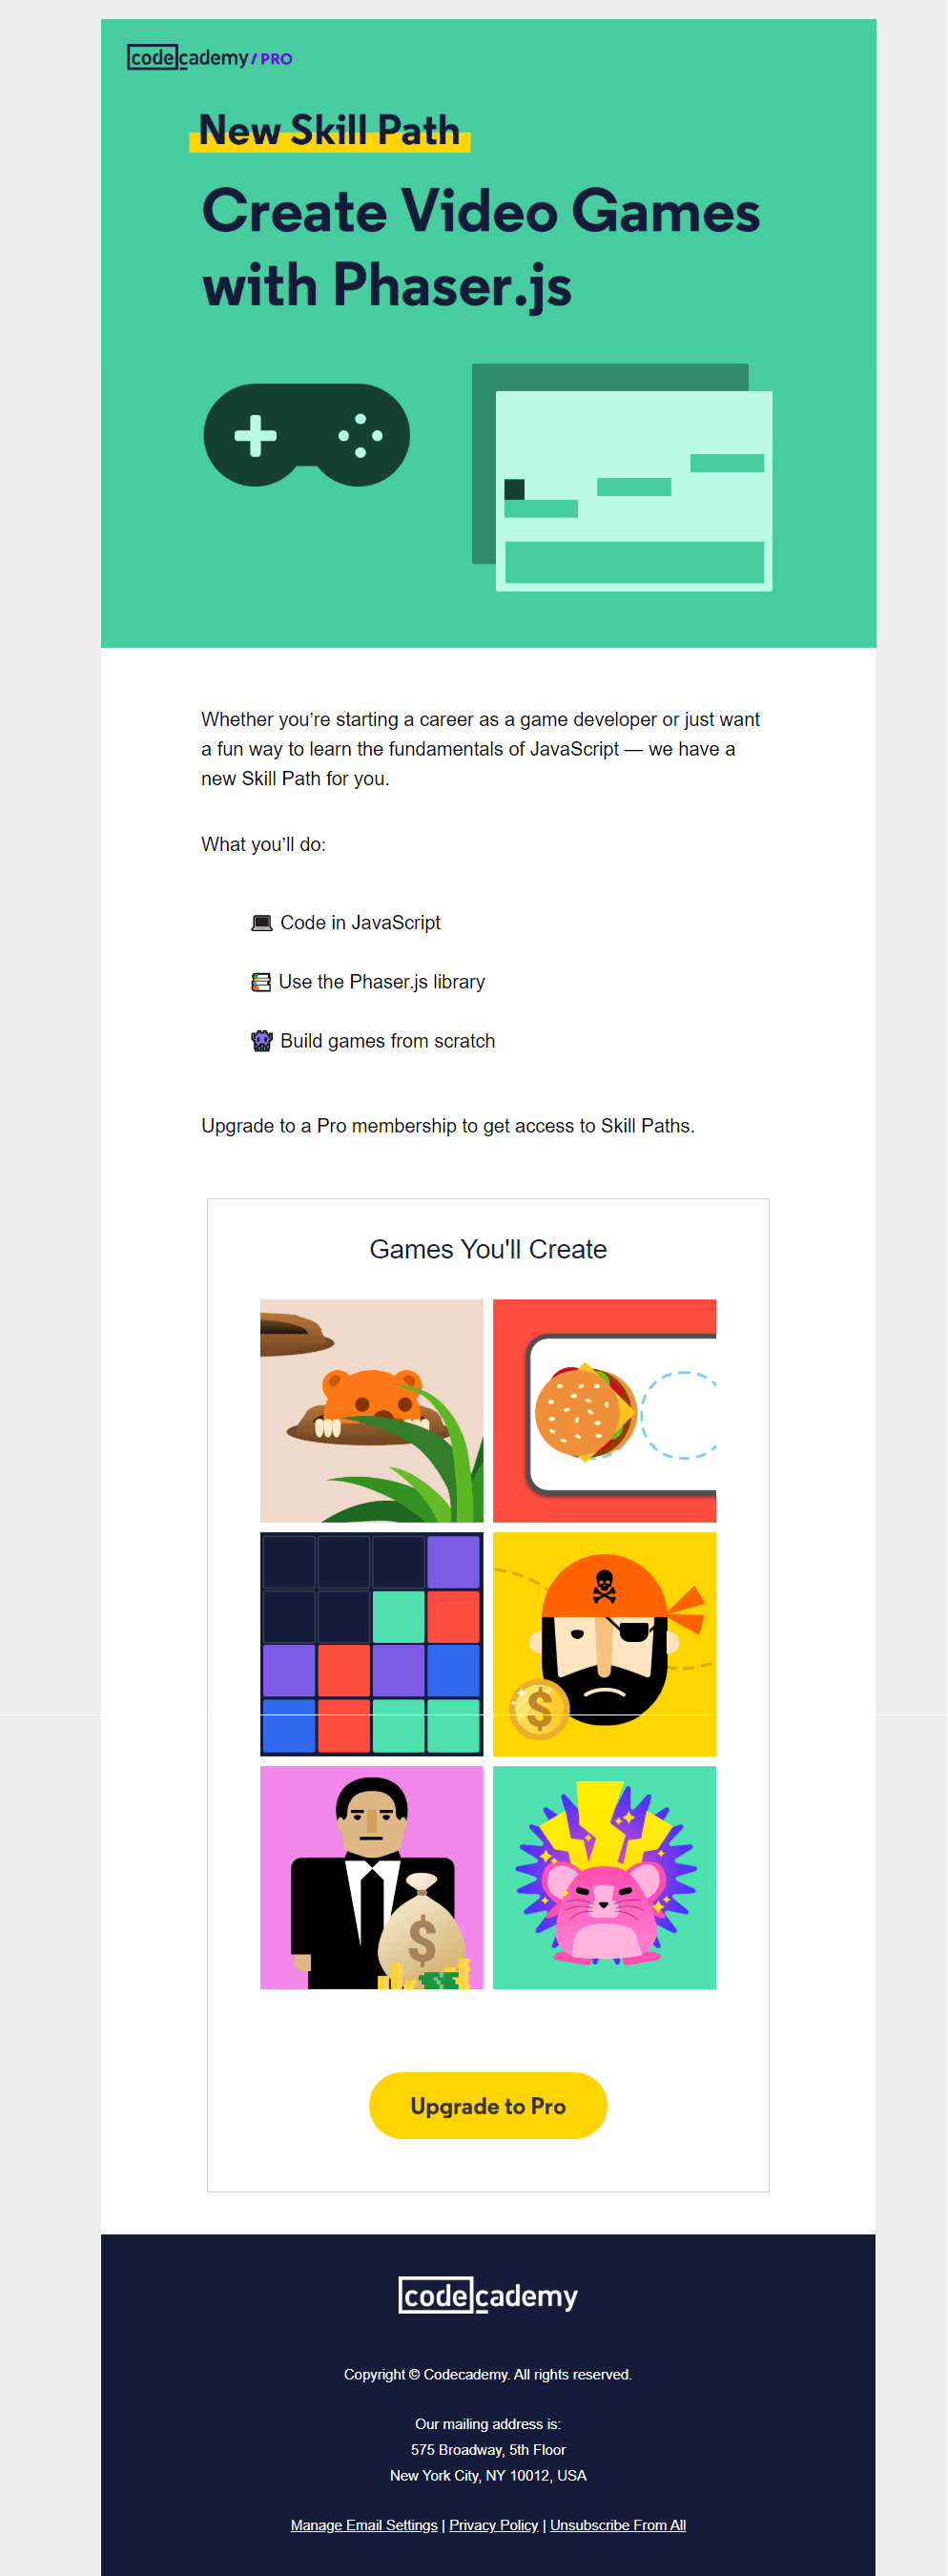 A product launch email